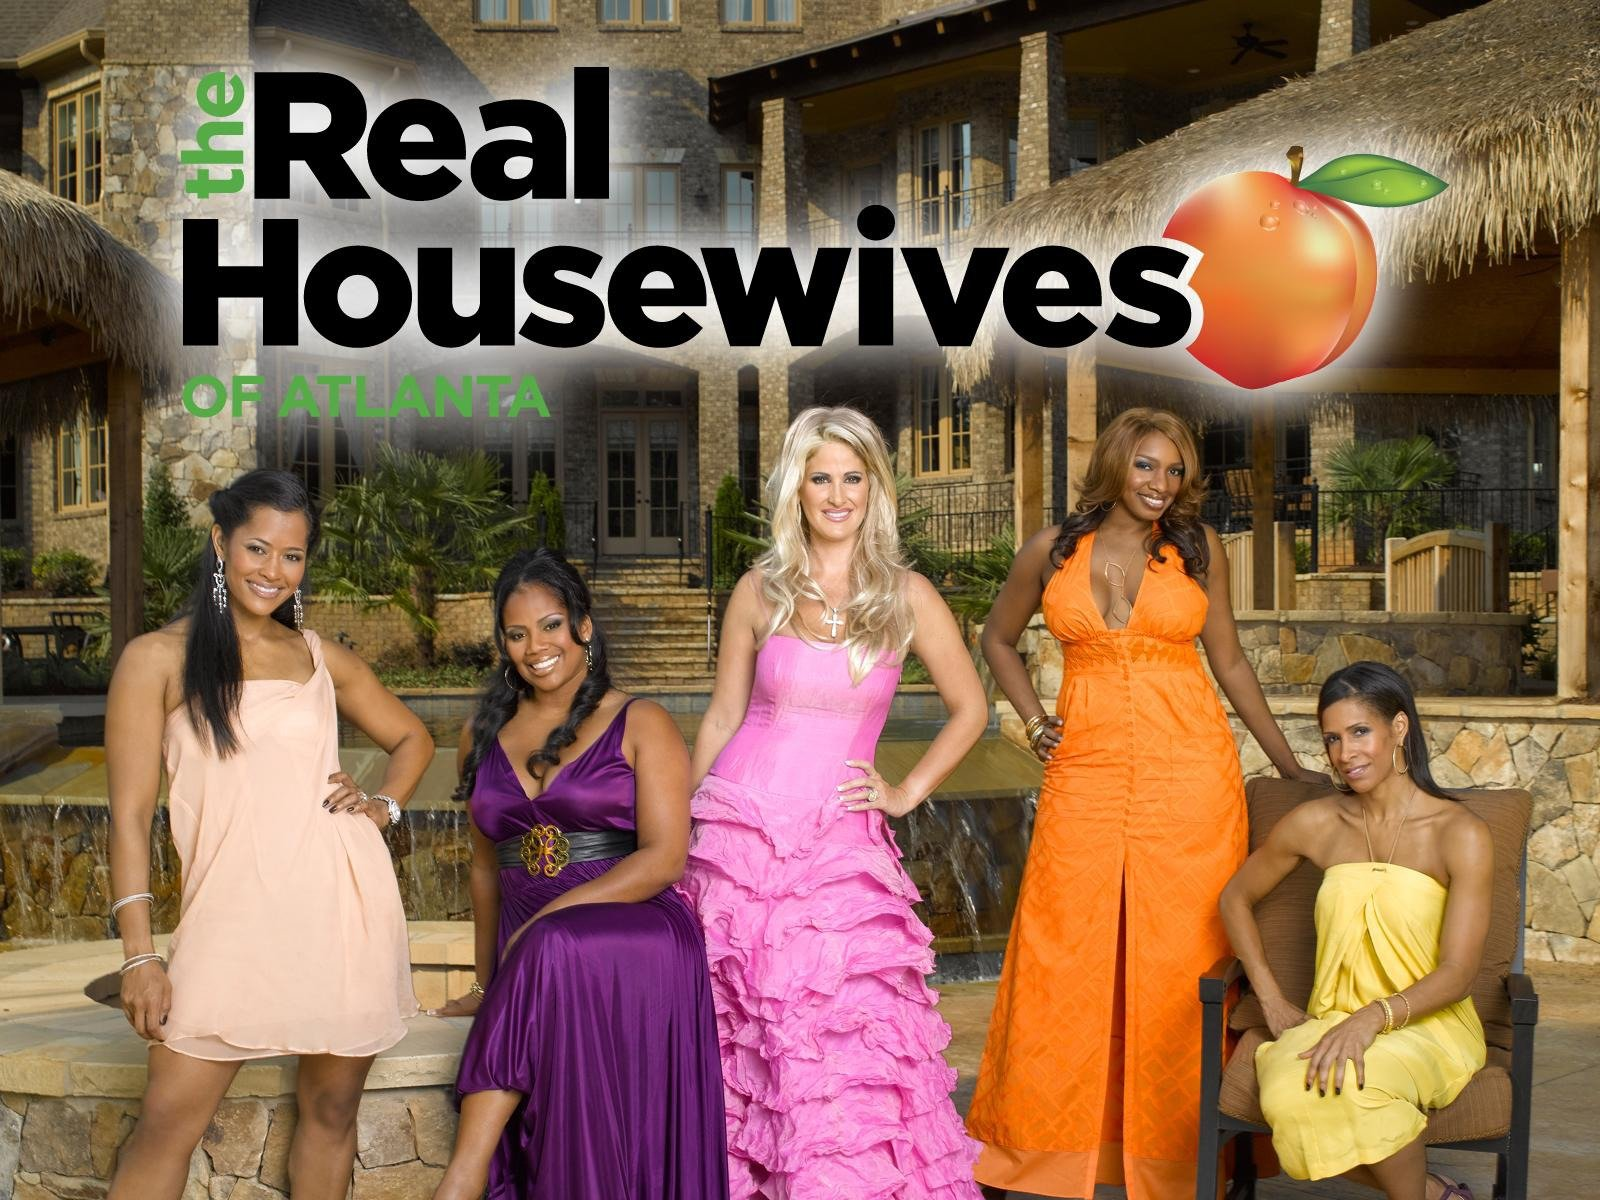 Amazon.co.uk: Watch The Real Housewives of Atlanta Season 5 | Prime Video